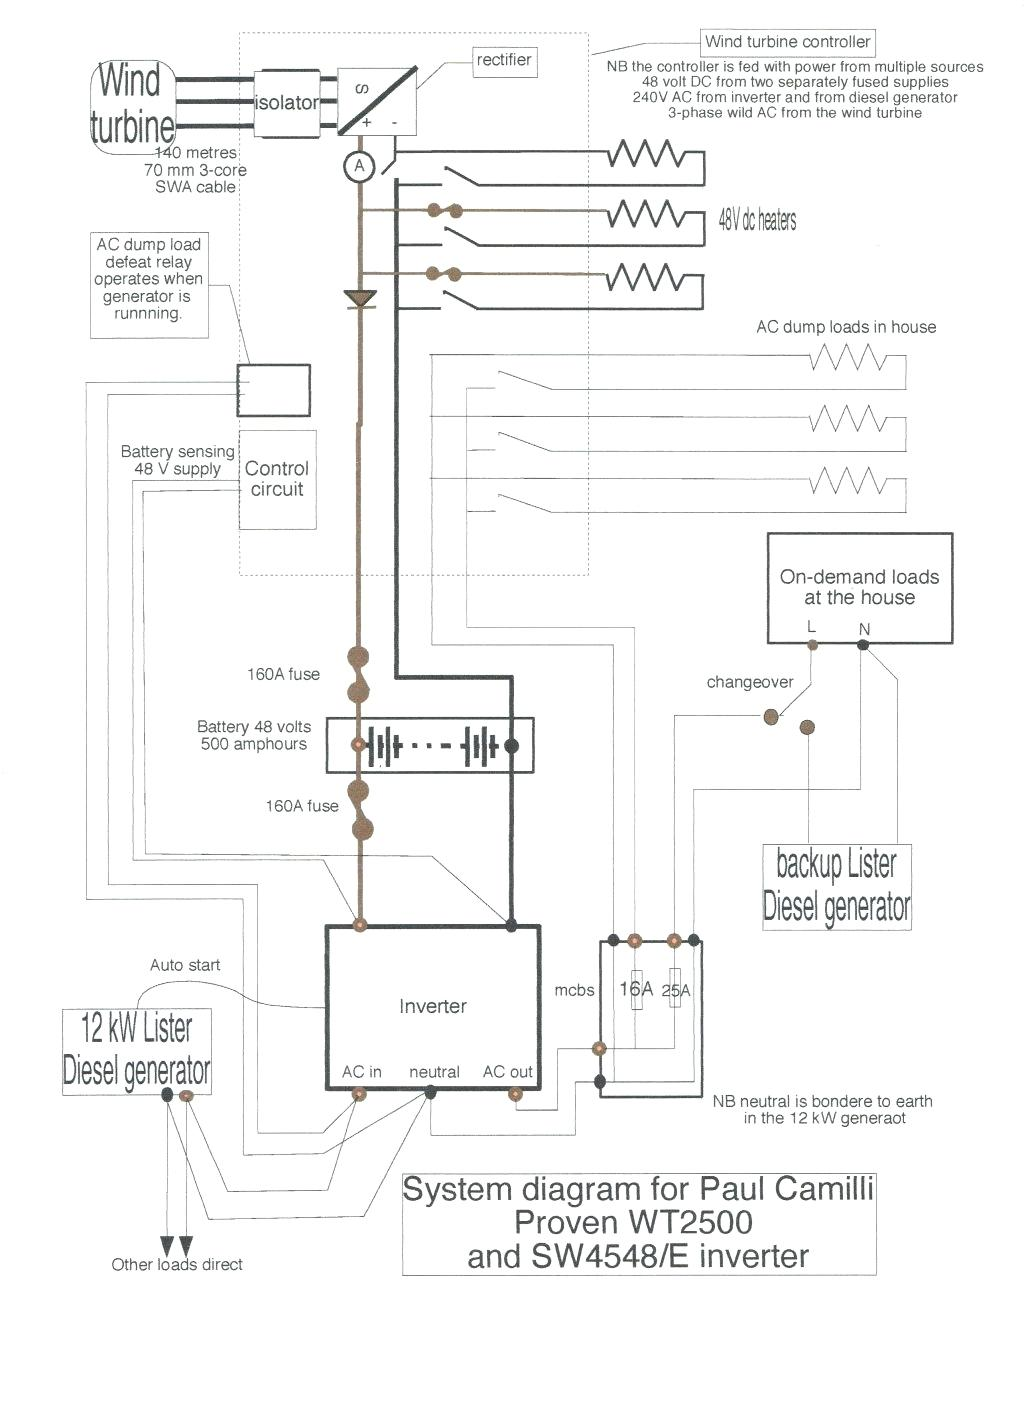 Telecaster Drawing At Free For Personal Use Wiring Diagram Download Schematic 1024x1408 Squier Stratocaster